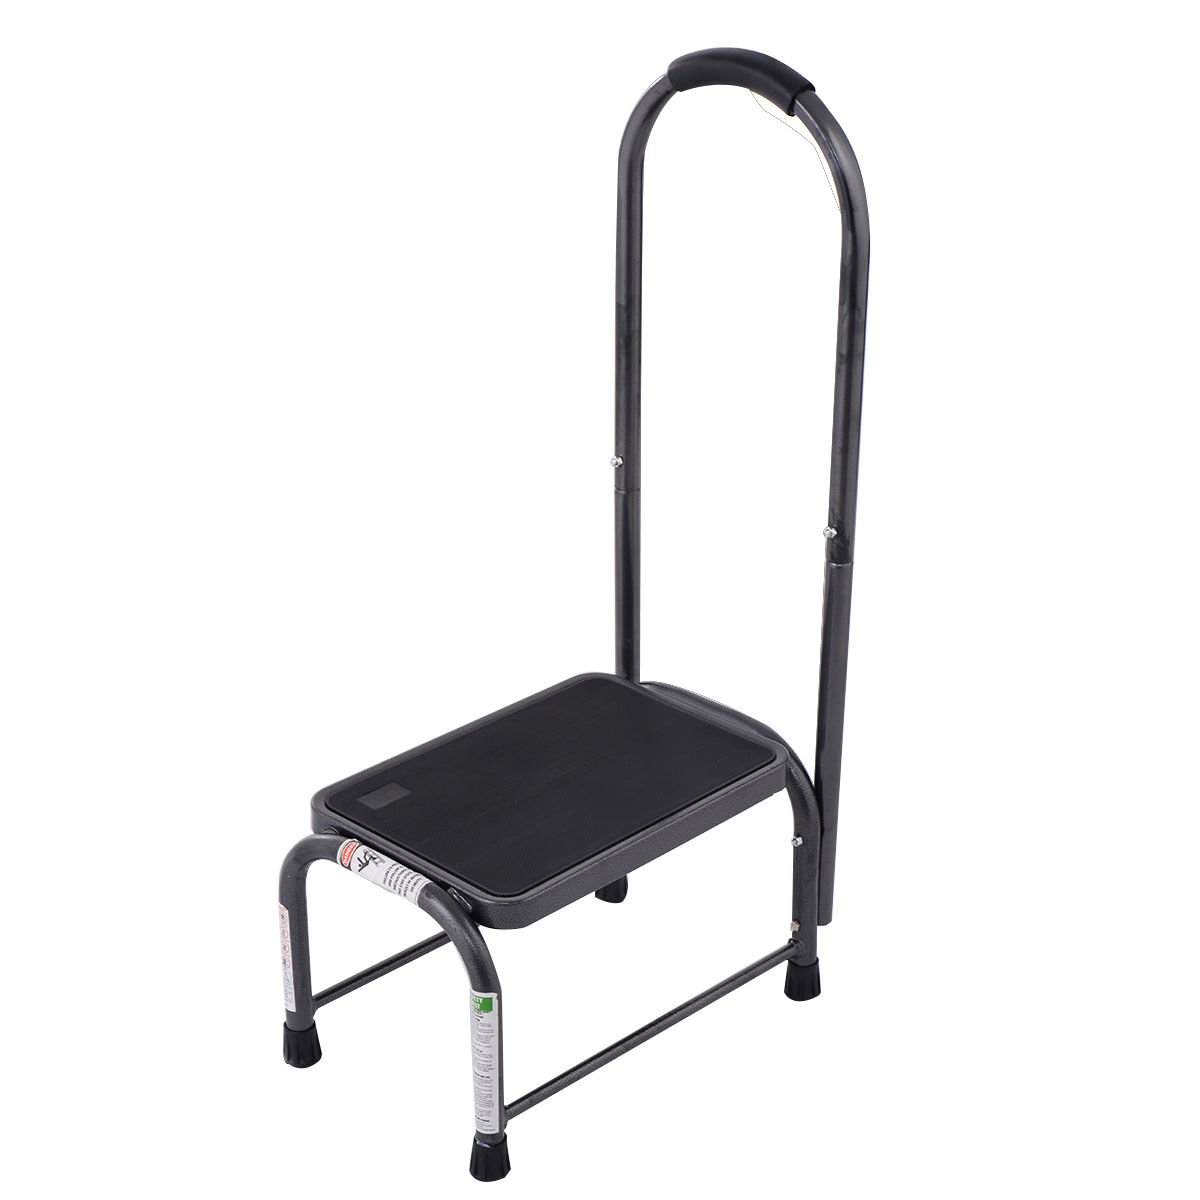 meijer bathtub chairs seats disabled elderly seat bench shower stool bath for adults bariatric handicap bathroom chair step